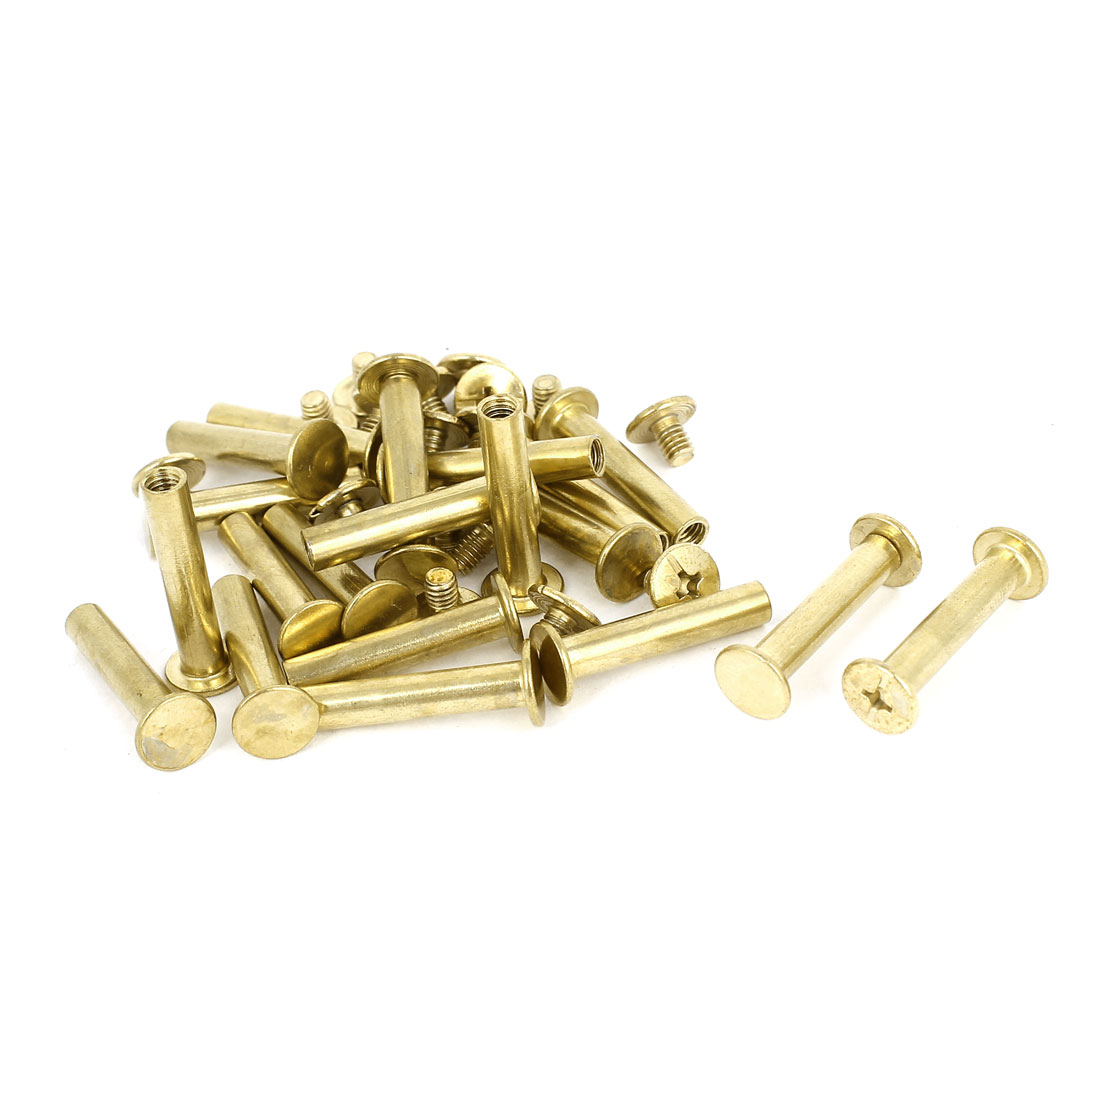 Brass Plated 5x25mm Binding Chicago Screw Post 20pcs for Leather Scrapbook